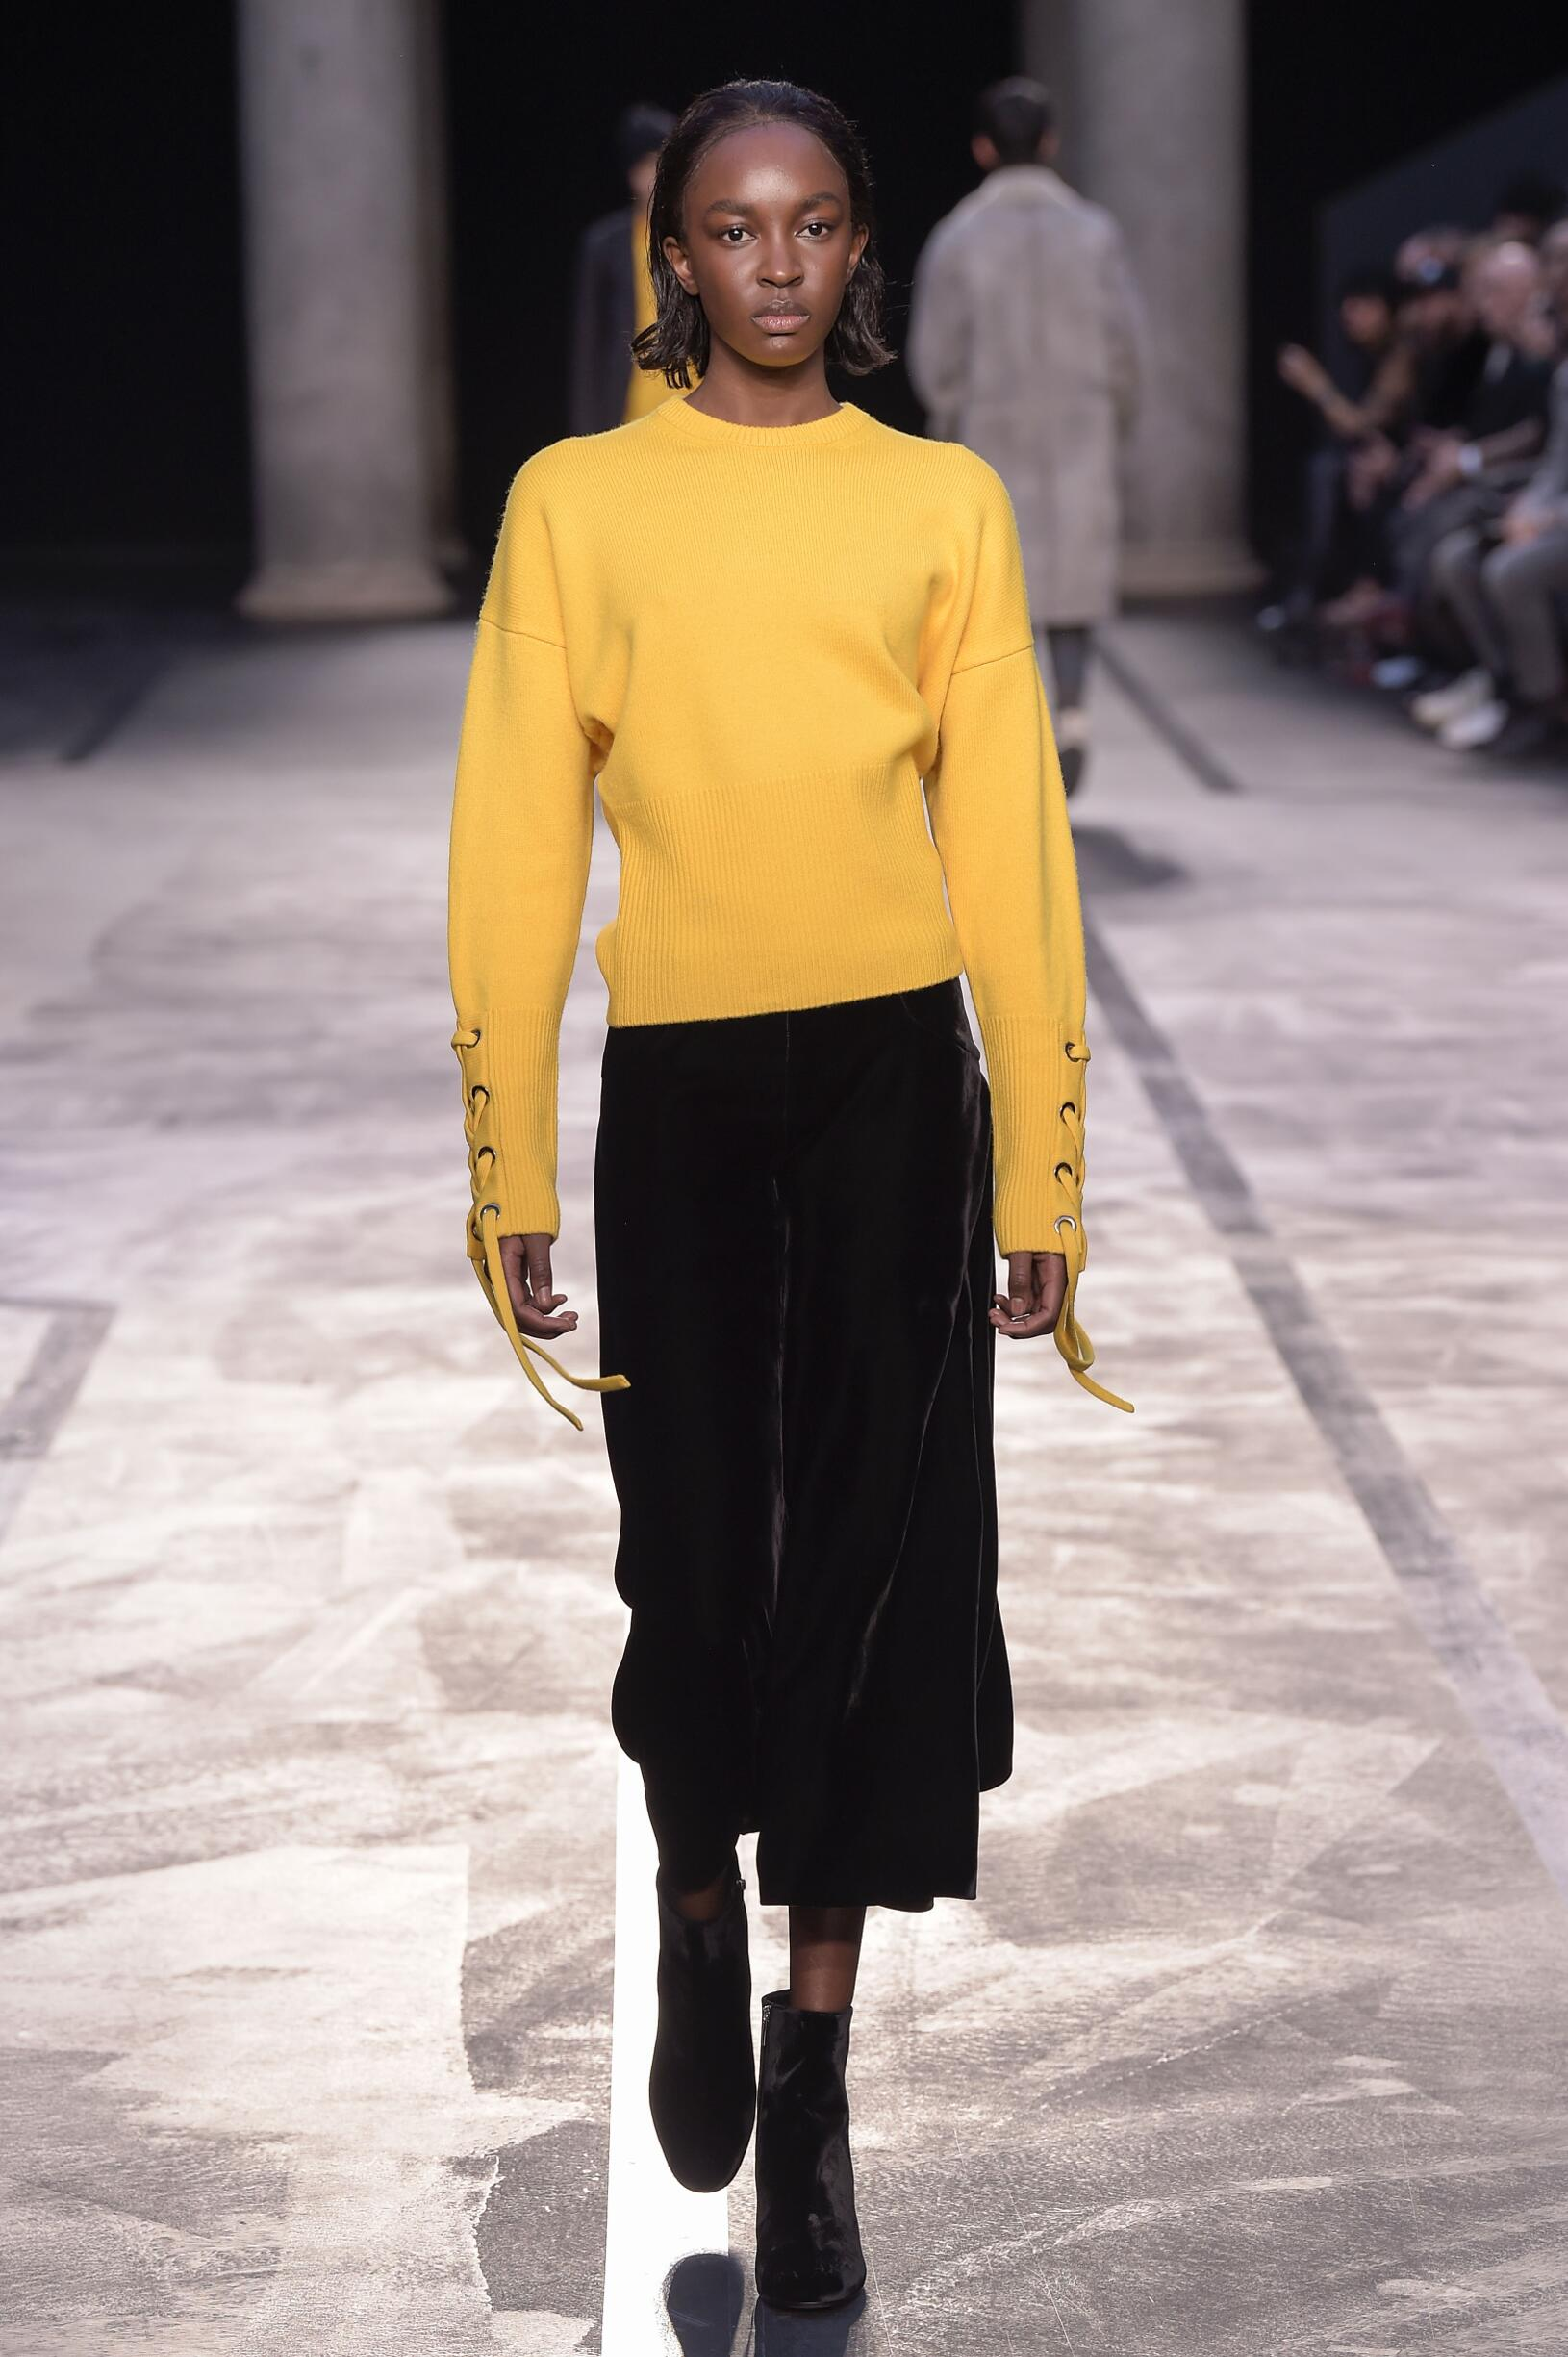 Catwalk Neil Barrett Woman Fashion Show Winter 2017